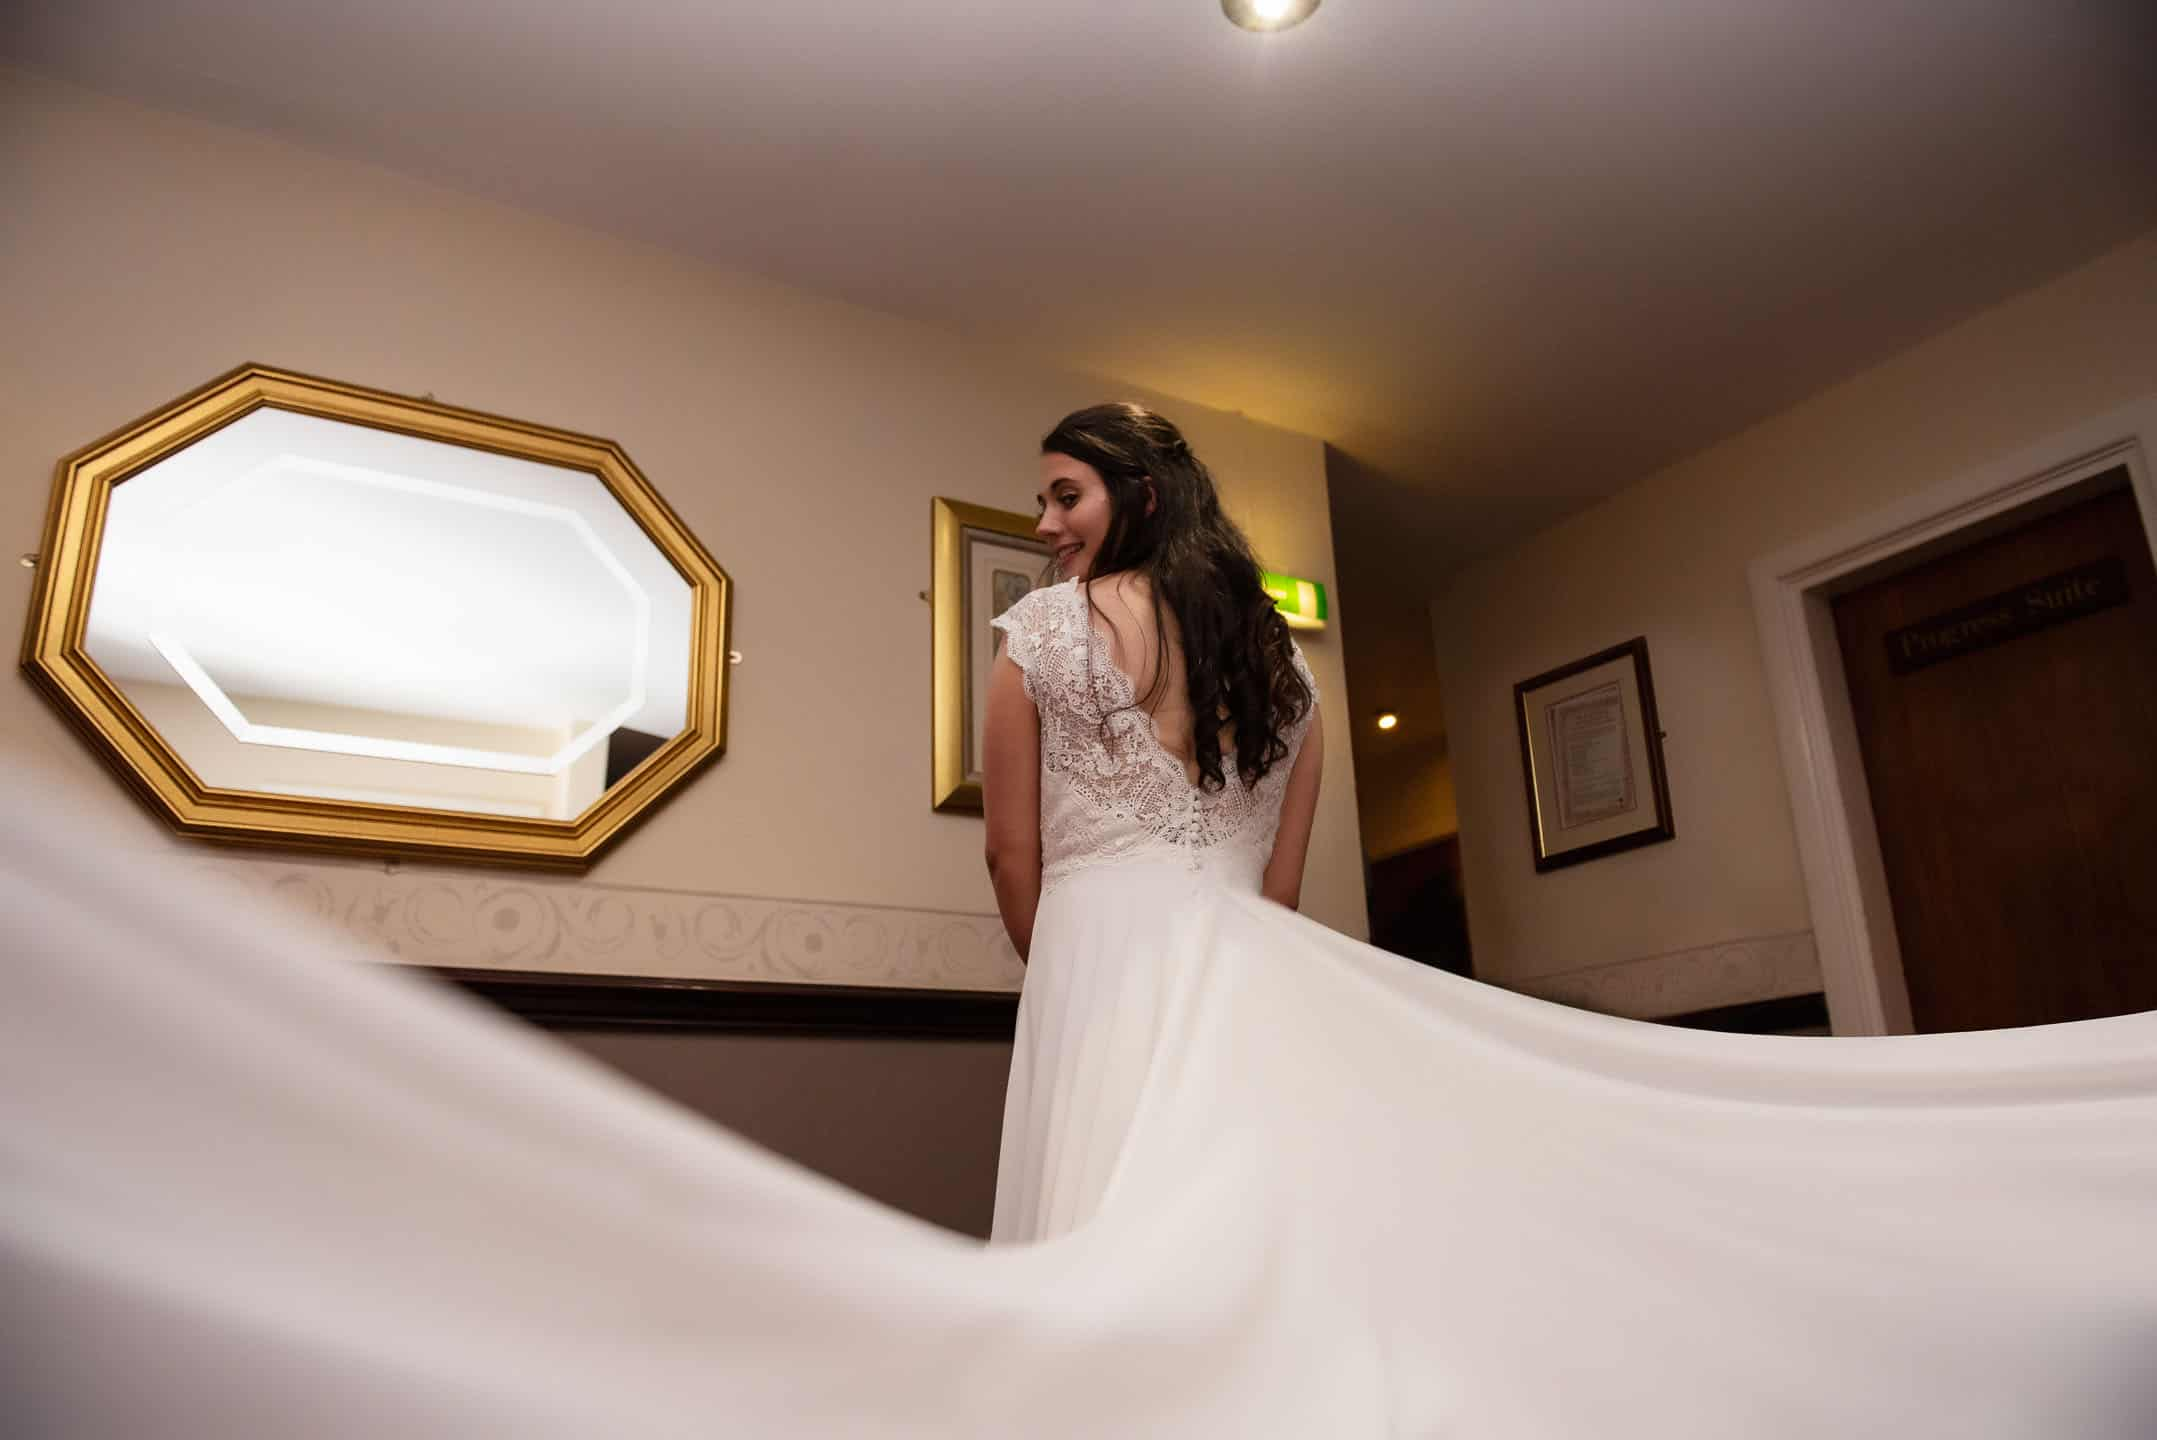 Manchester Wedding Photography by Alin Turcanu bride